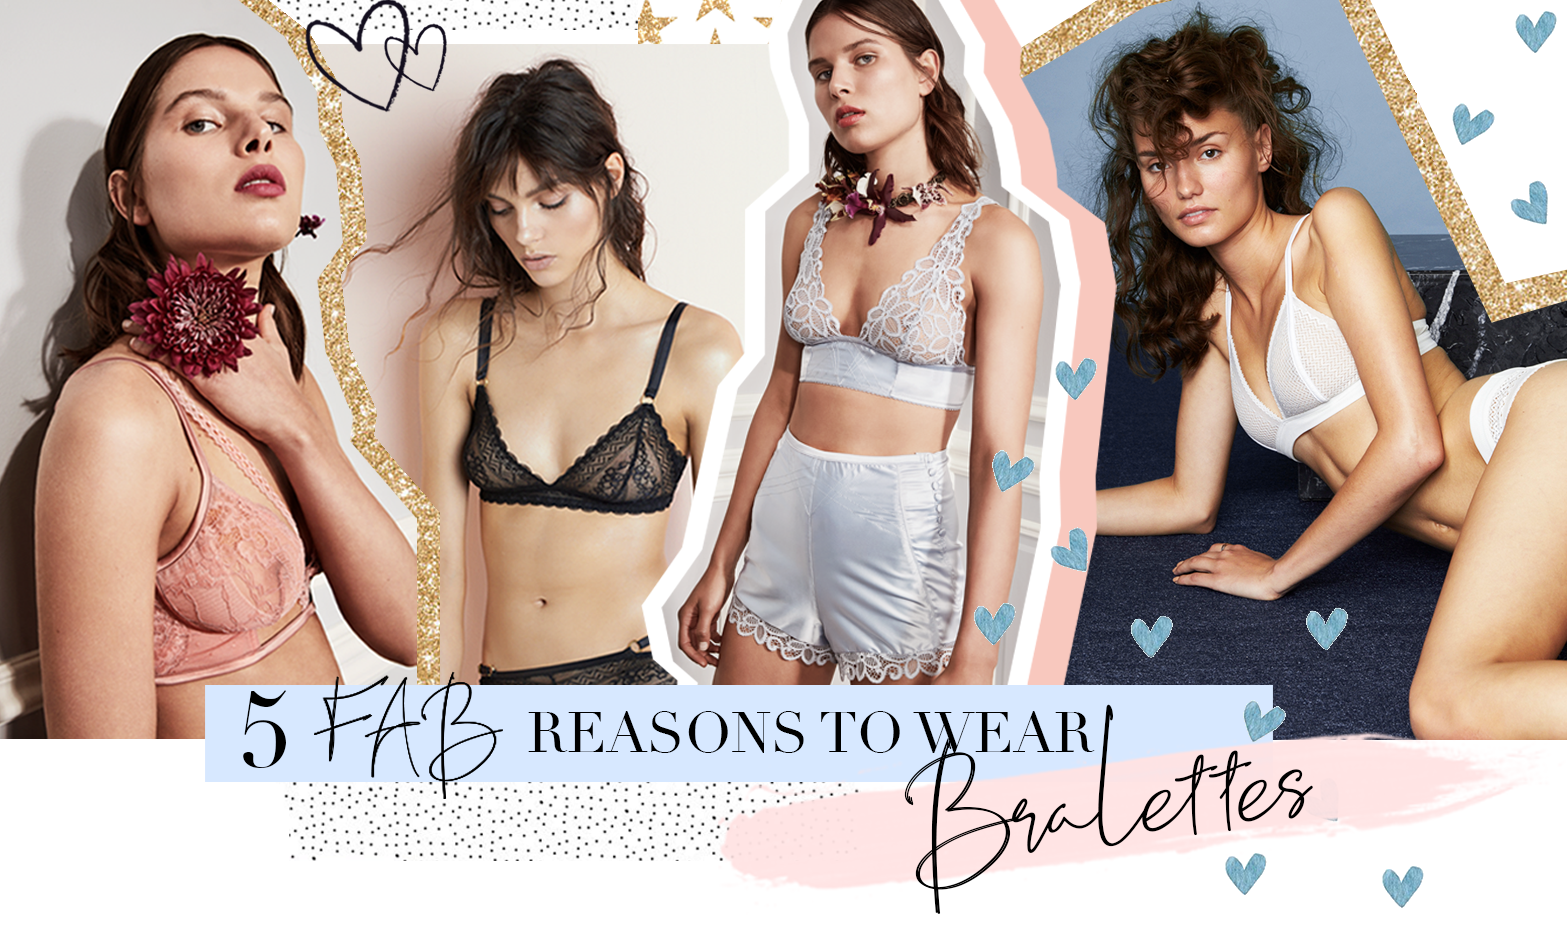 5 FAB REASONS TO WEAR A BRALETTE